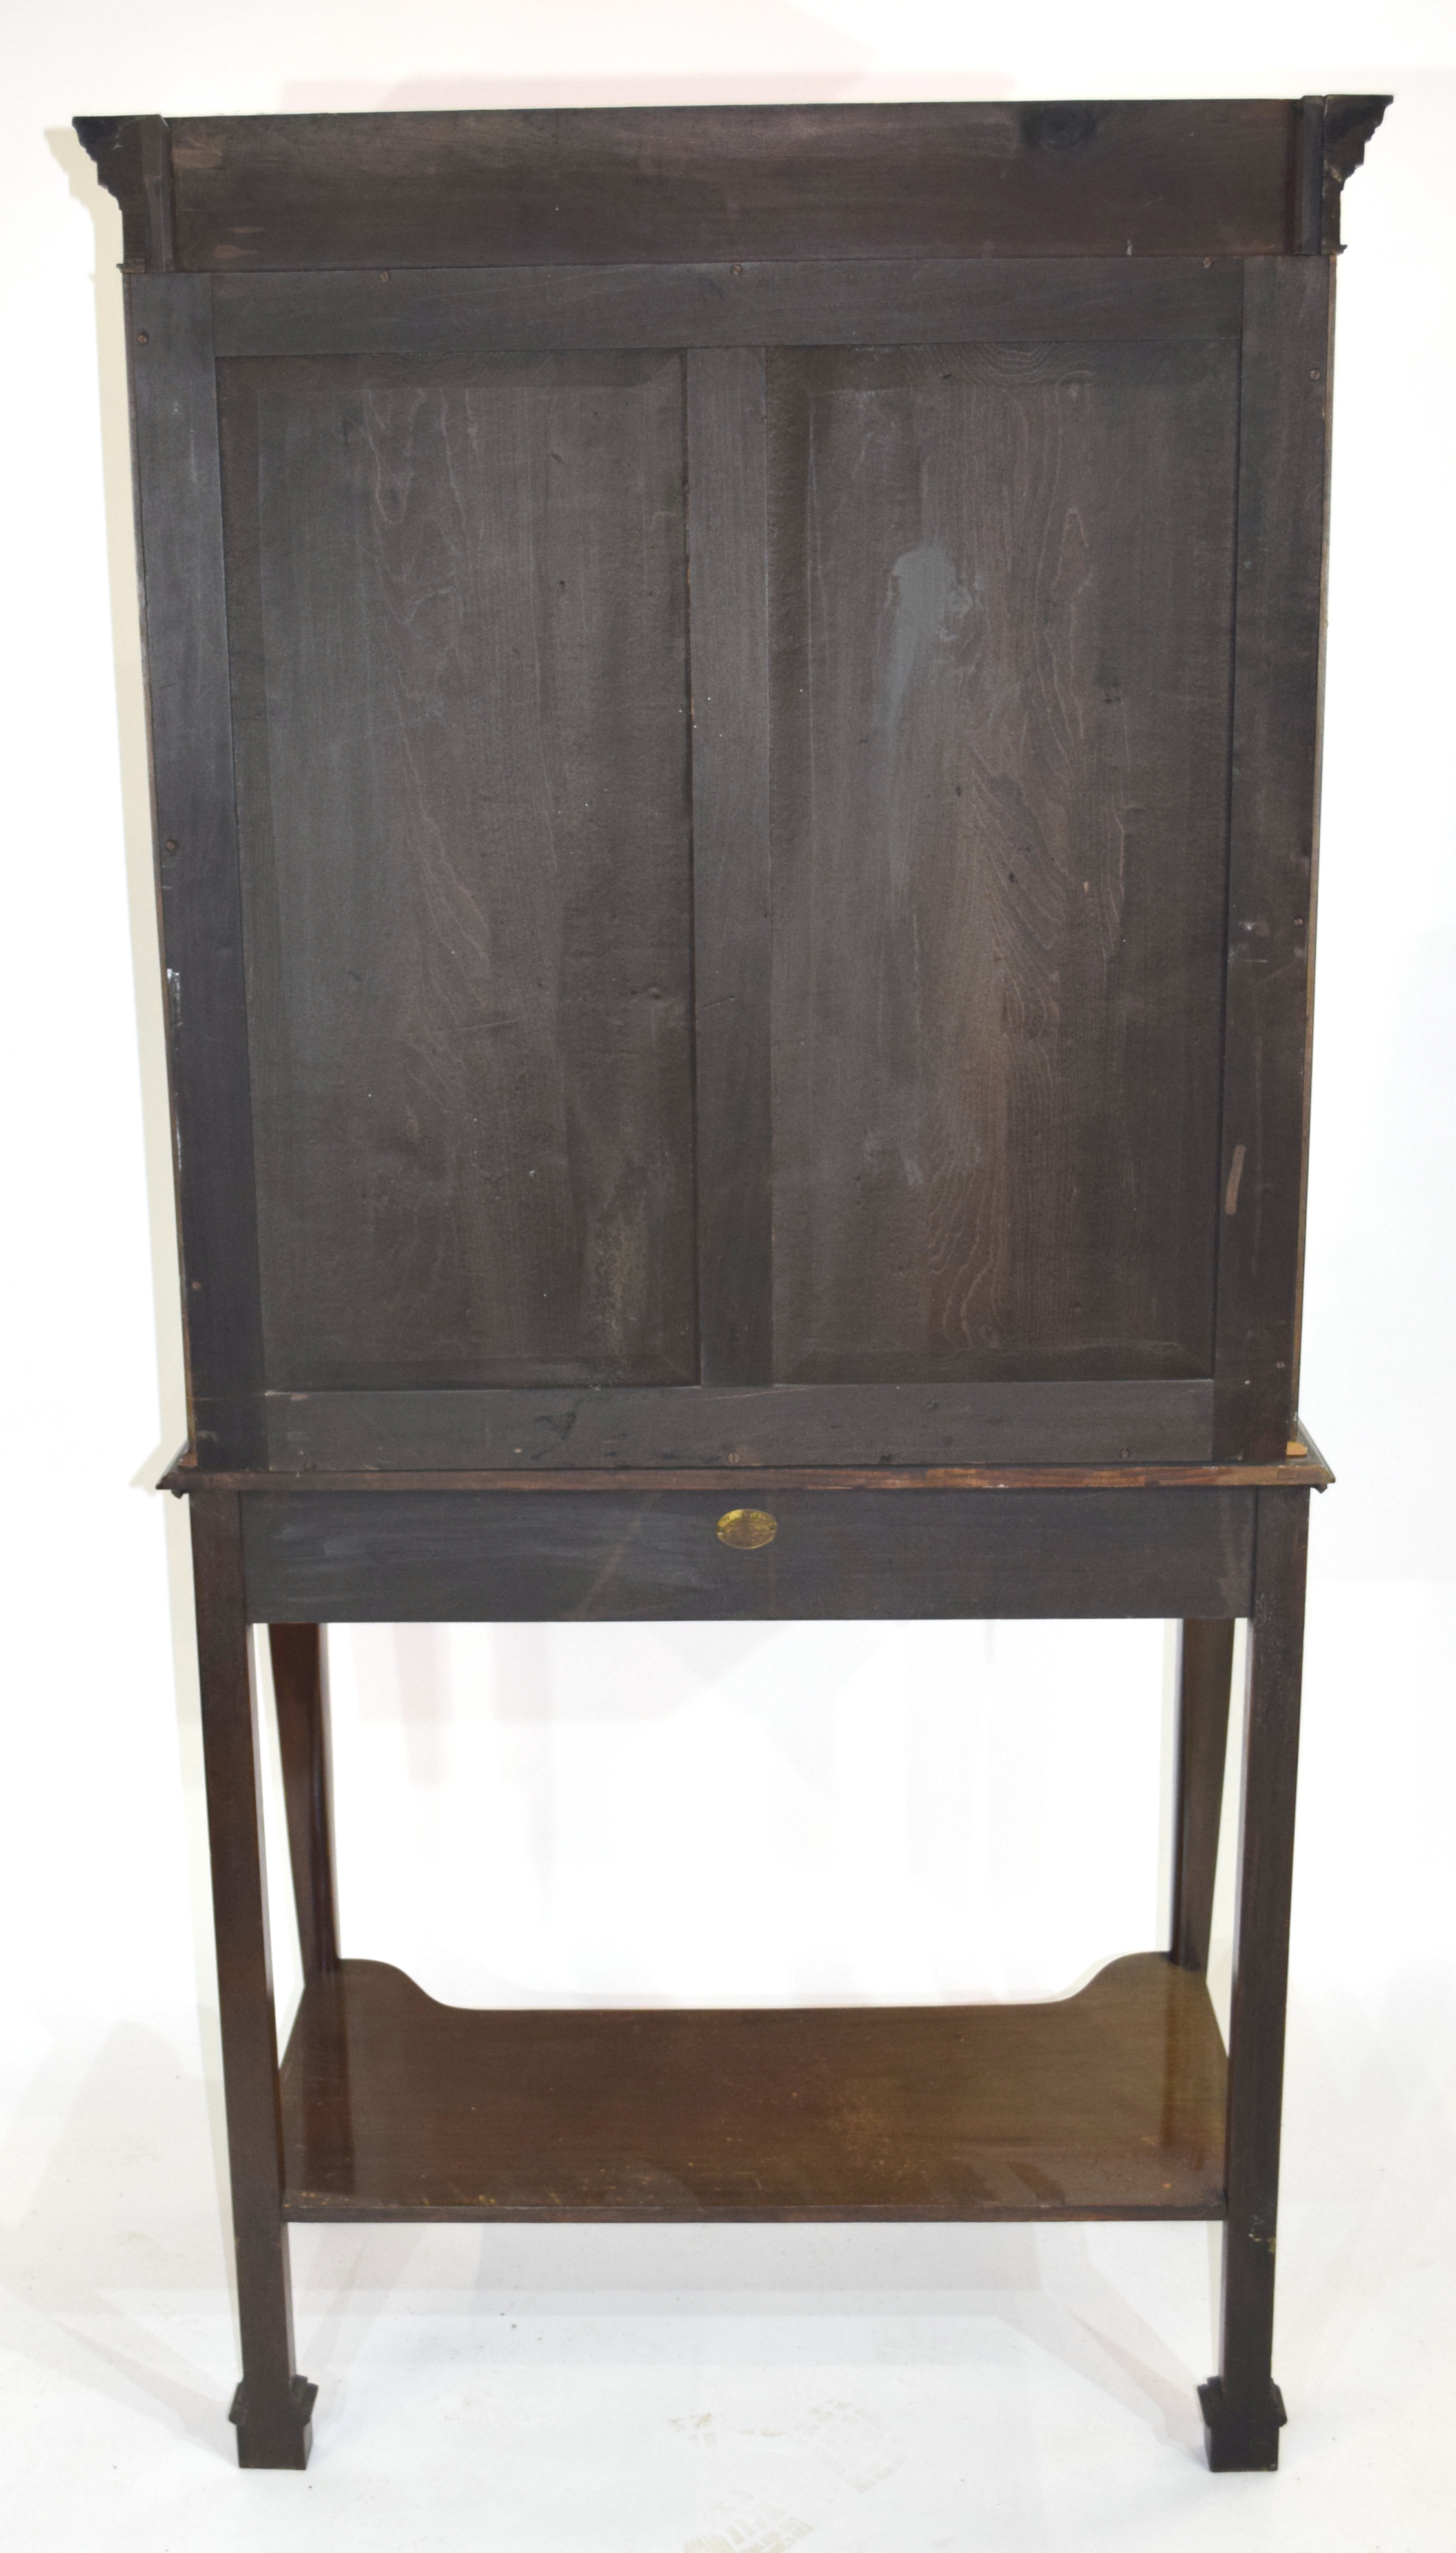 Edwardian mahogany side cabinet with shaped cornice over a top section with two glazed doors and - Image 6 of 7